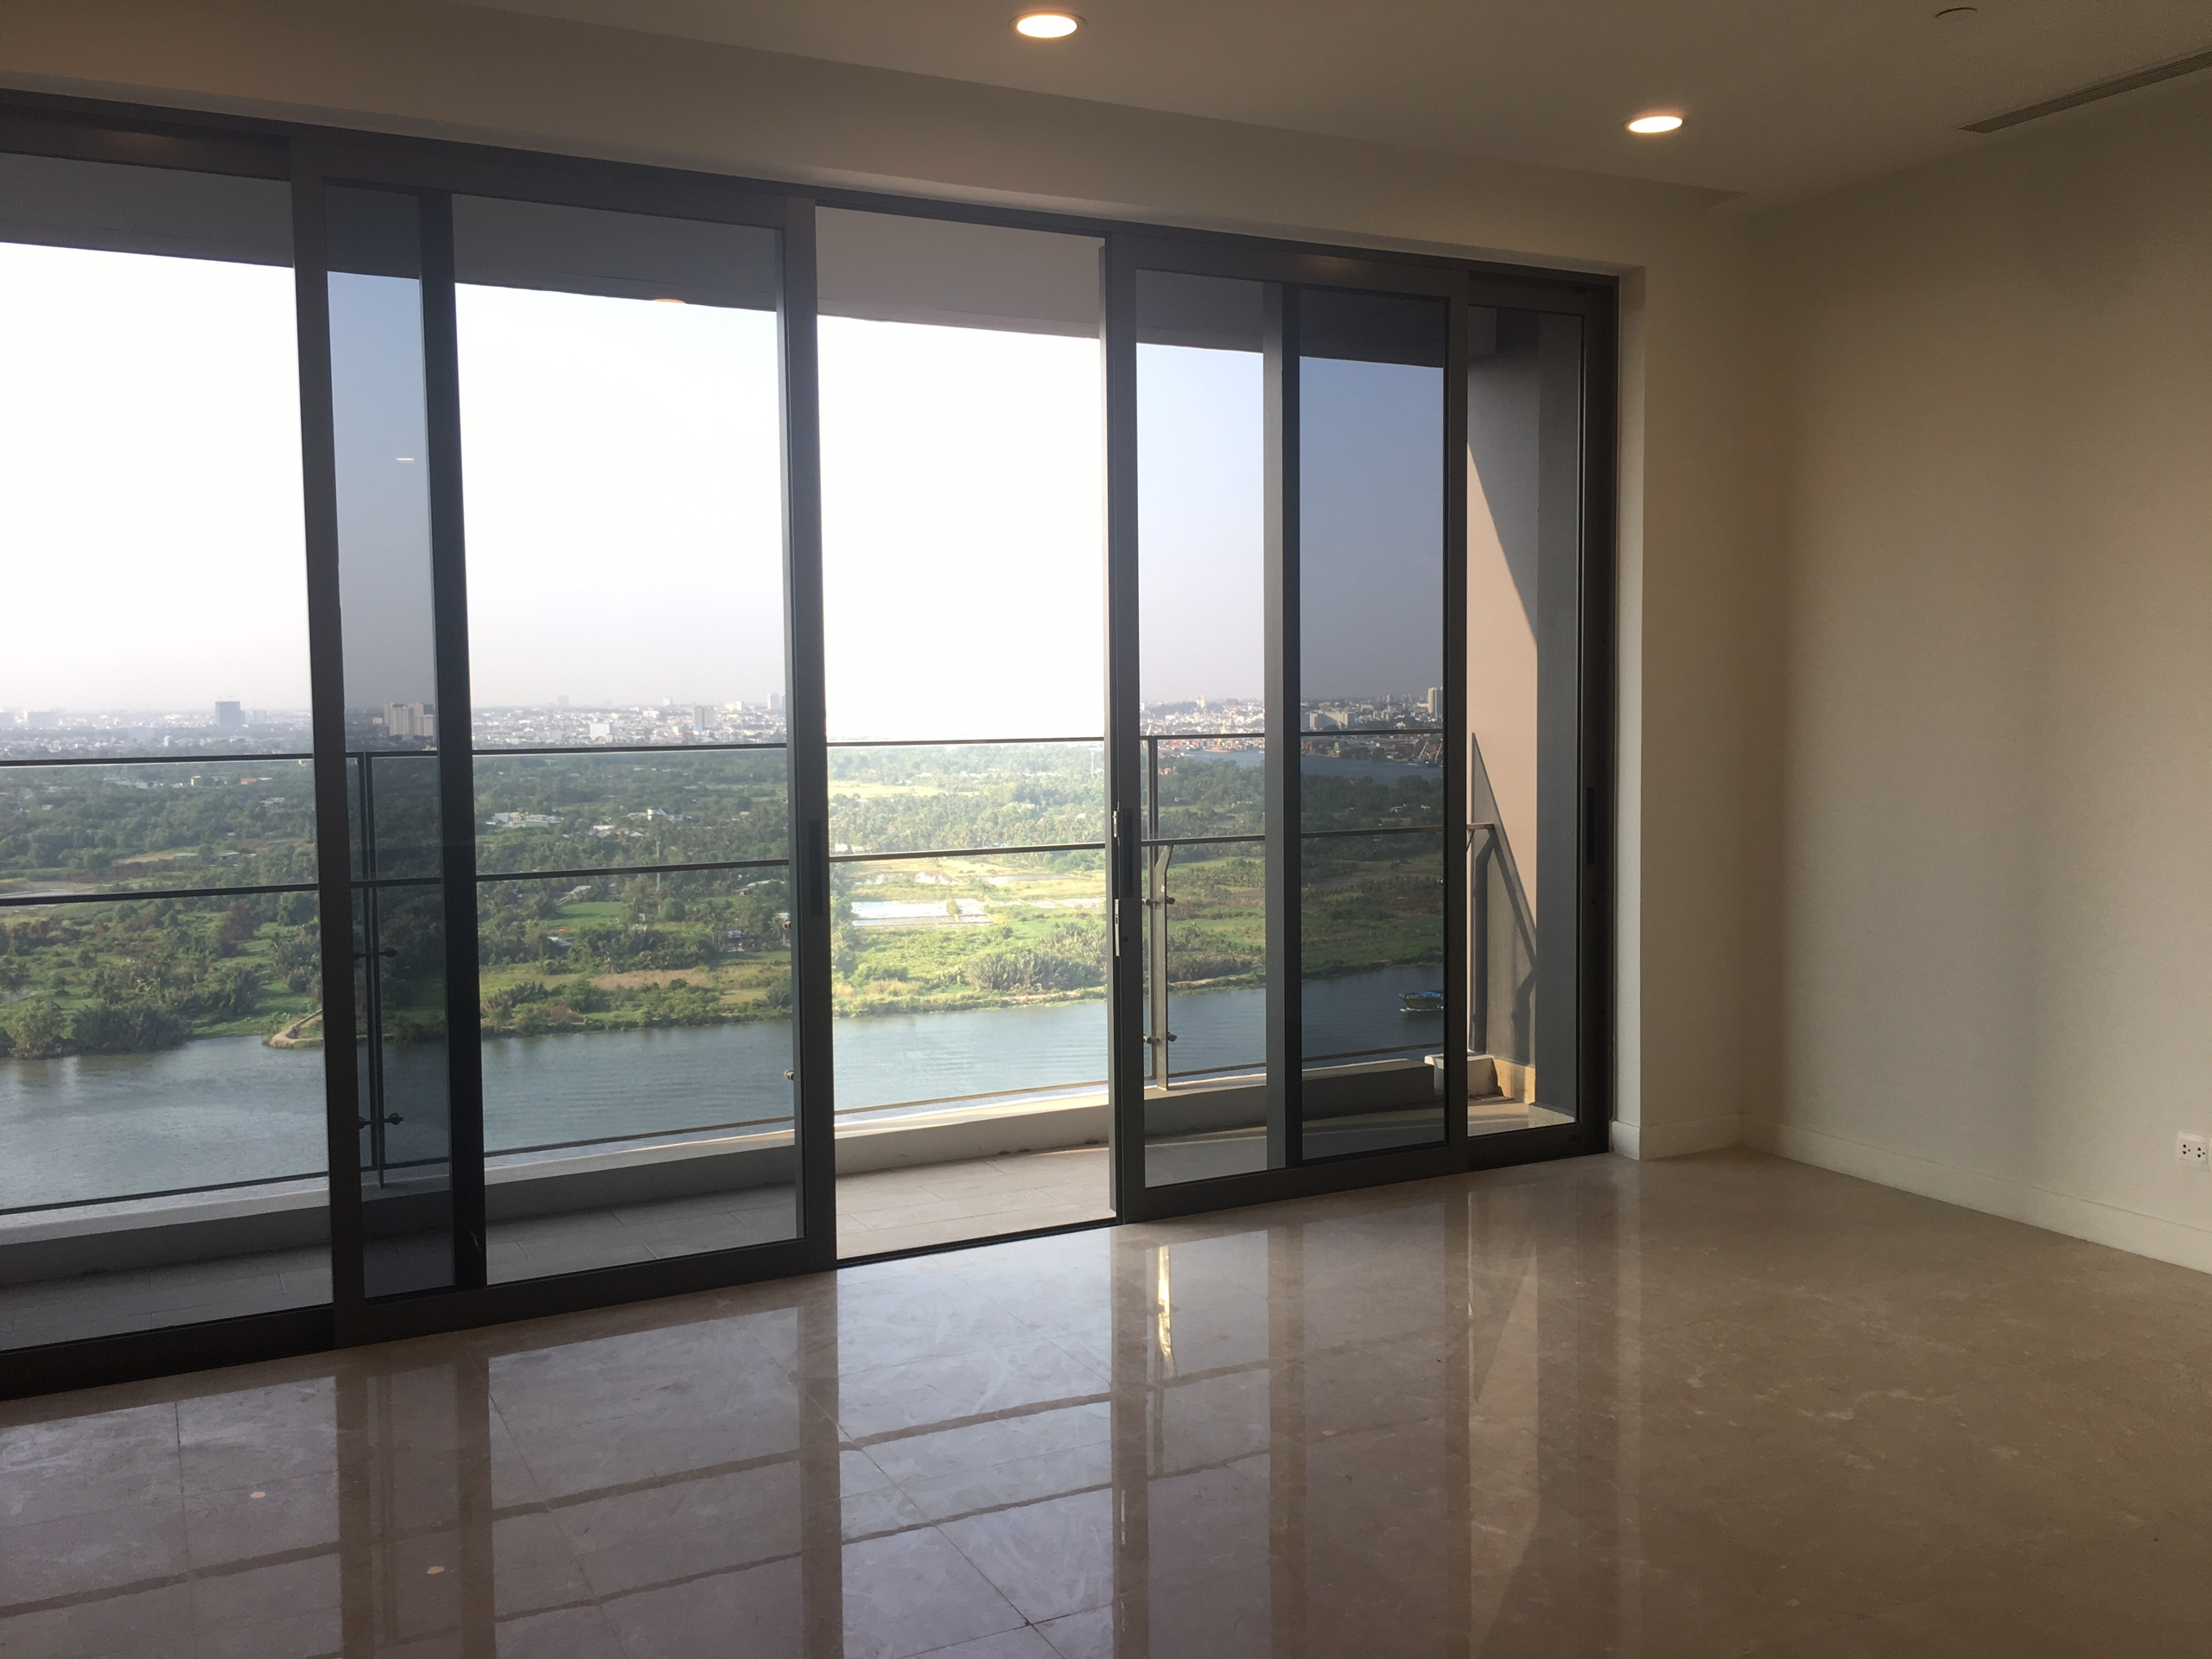 apartment for rent in district 2 hcmc the nassim apartment for rent in district 2 hcmc D223136 (16)